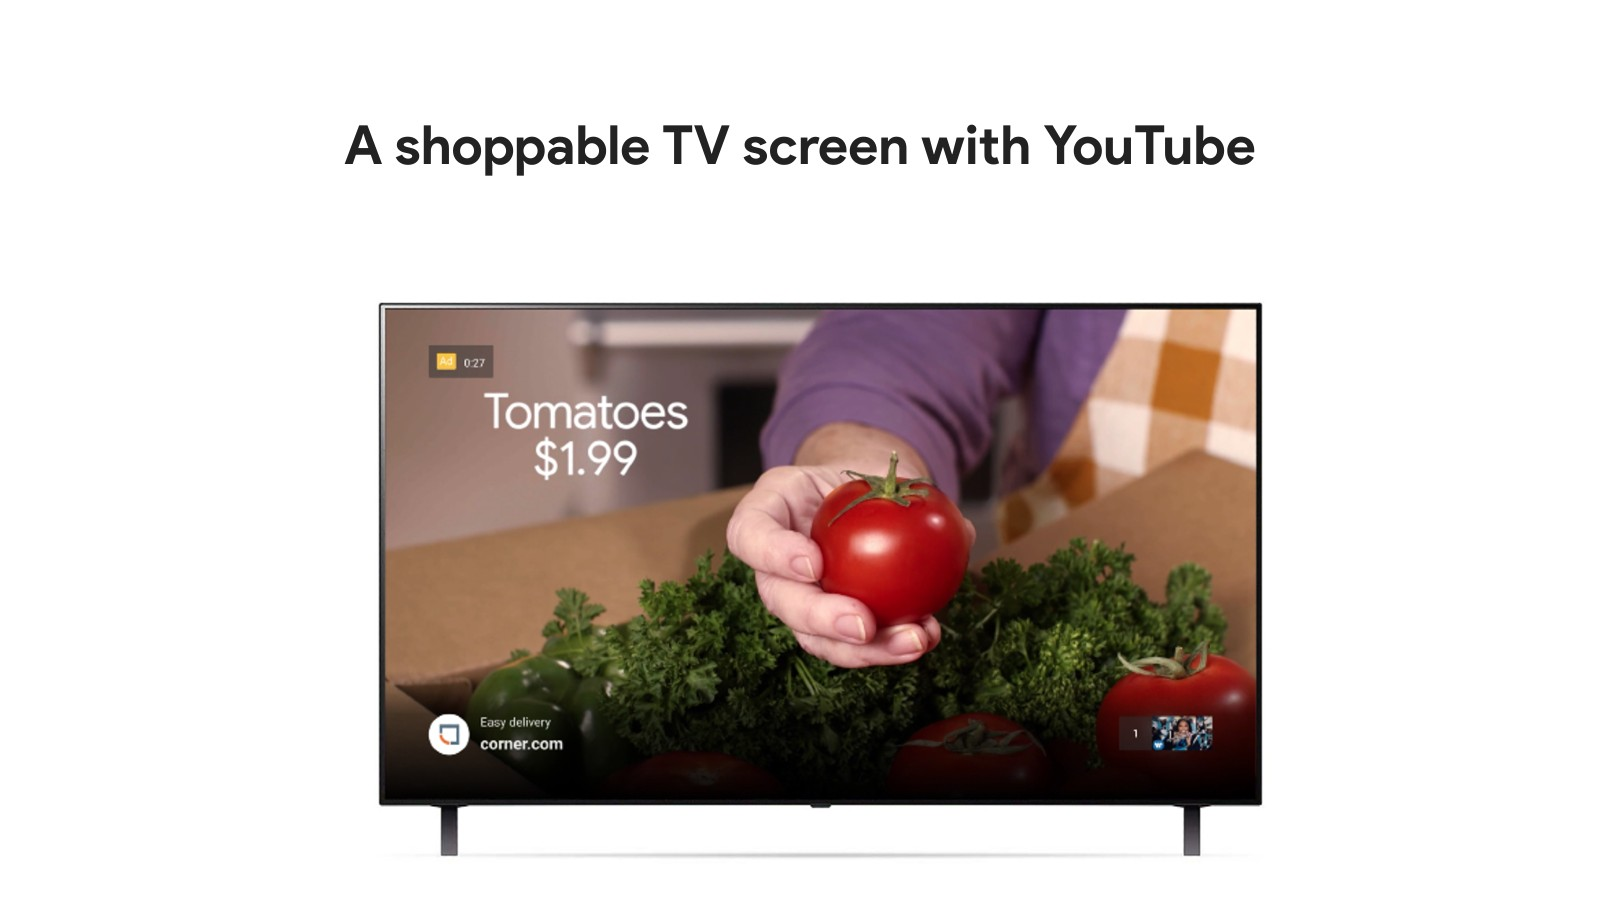 Youtube has created a way for you to purchase what you see on your TV as you're watching it